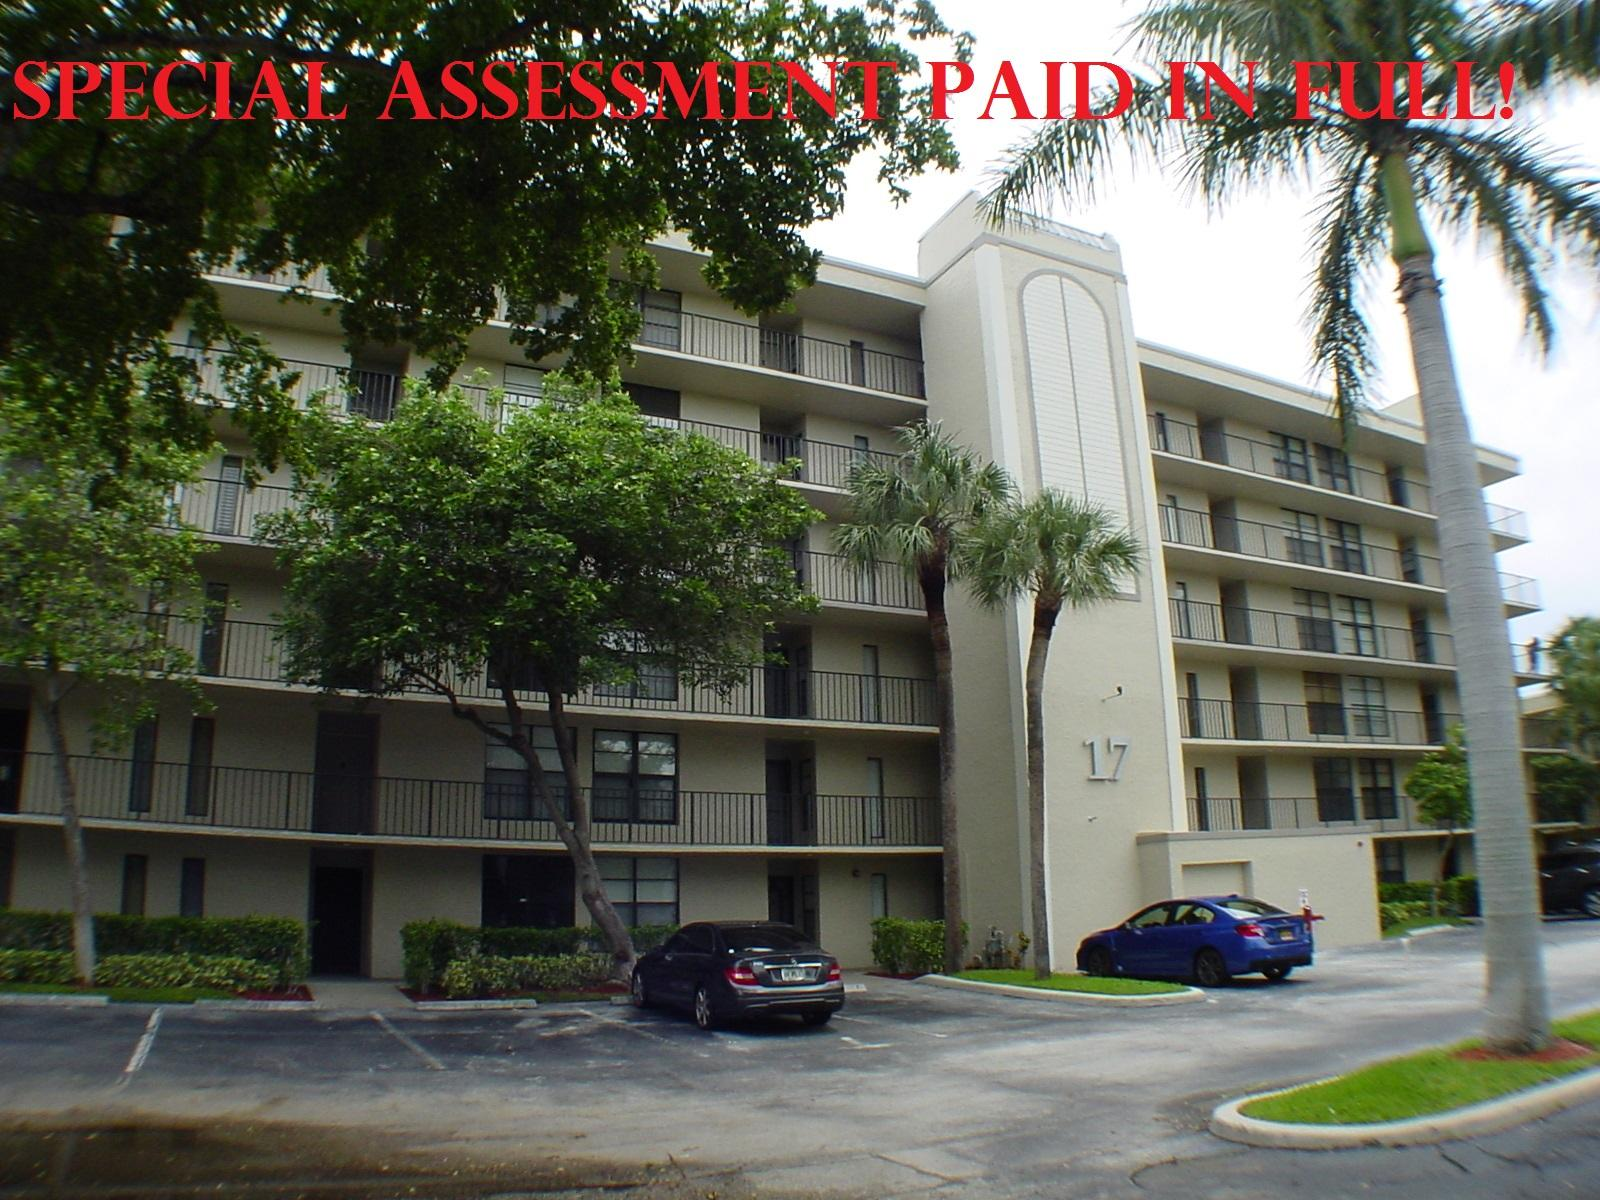 17 Royal Palm Way, Boca Raton, Florida 33432, 2 Bedrooms Bedrooms, ,2 BathroomsBathrooms,Condo/Coop,For Sale,Boca Bayou,Royal Palm,6,RX-10454978